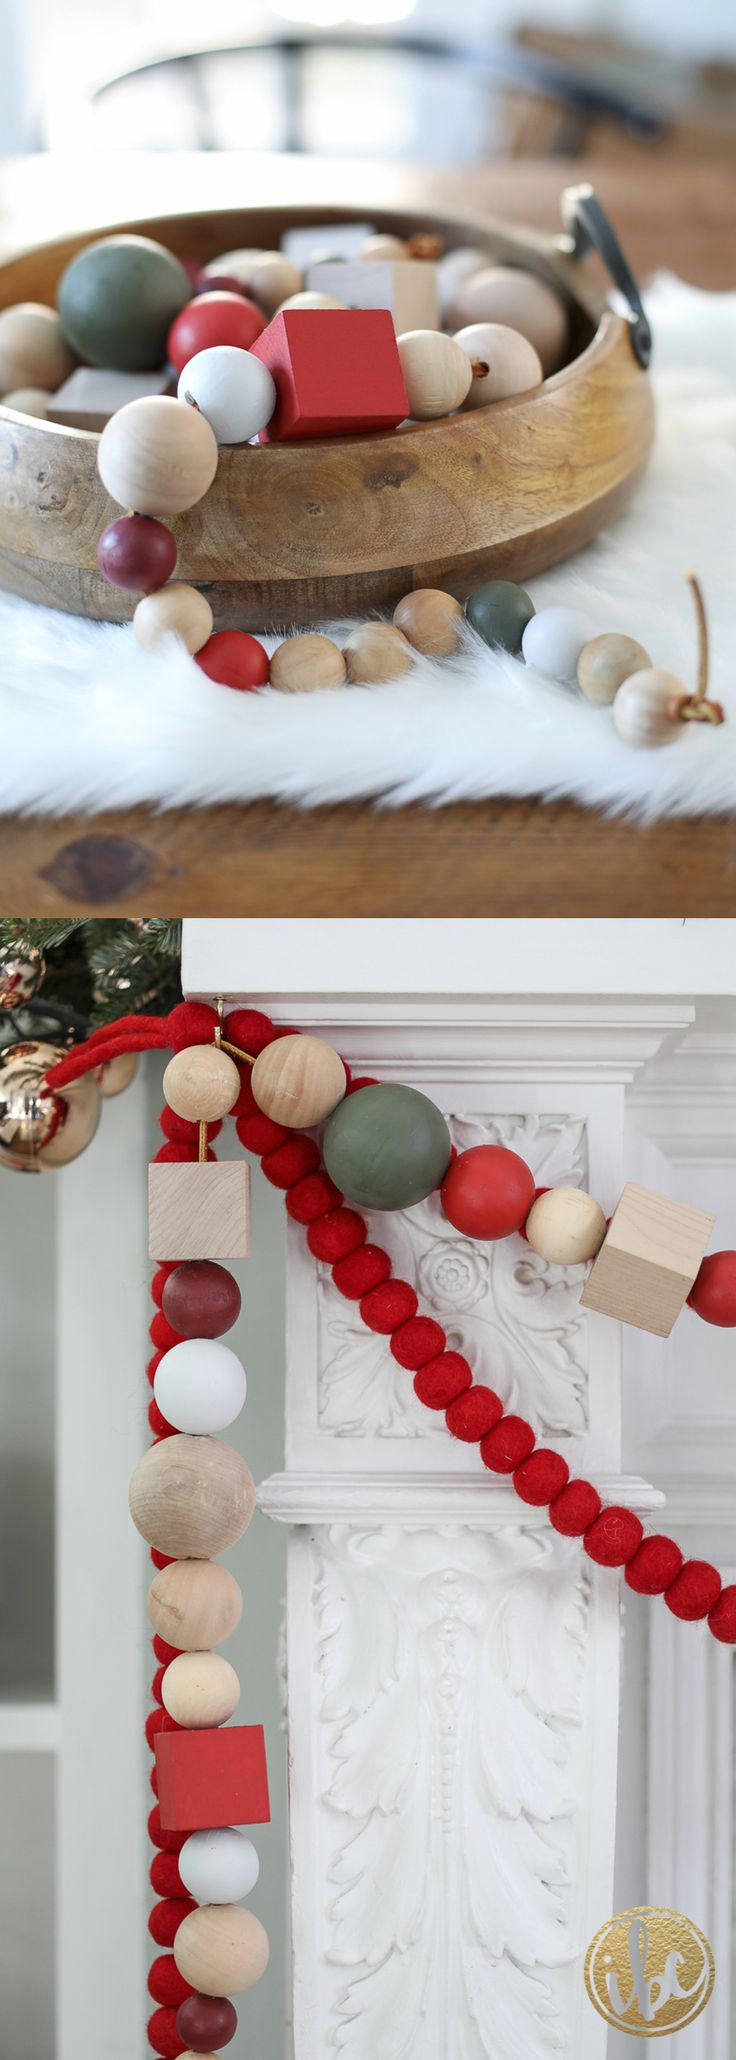 Uncategorized christmas decorations amp holiday decorations - Colorful Wood Bead Garland Diy Christmas Holiday Decor Inspired By Charm